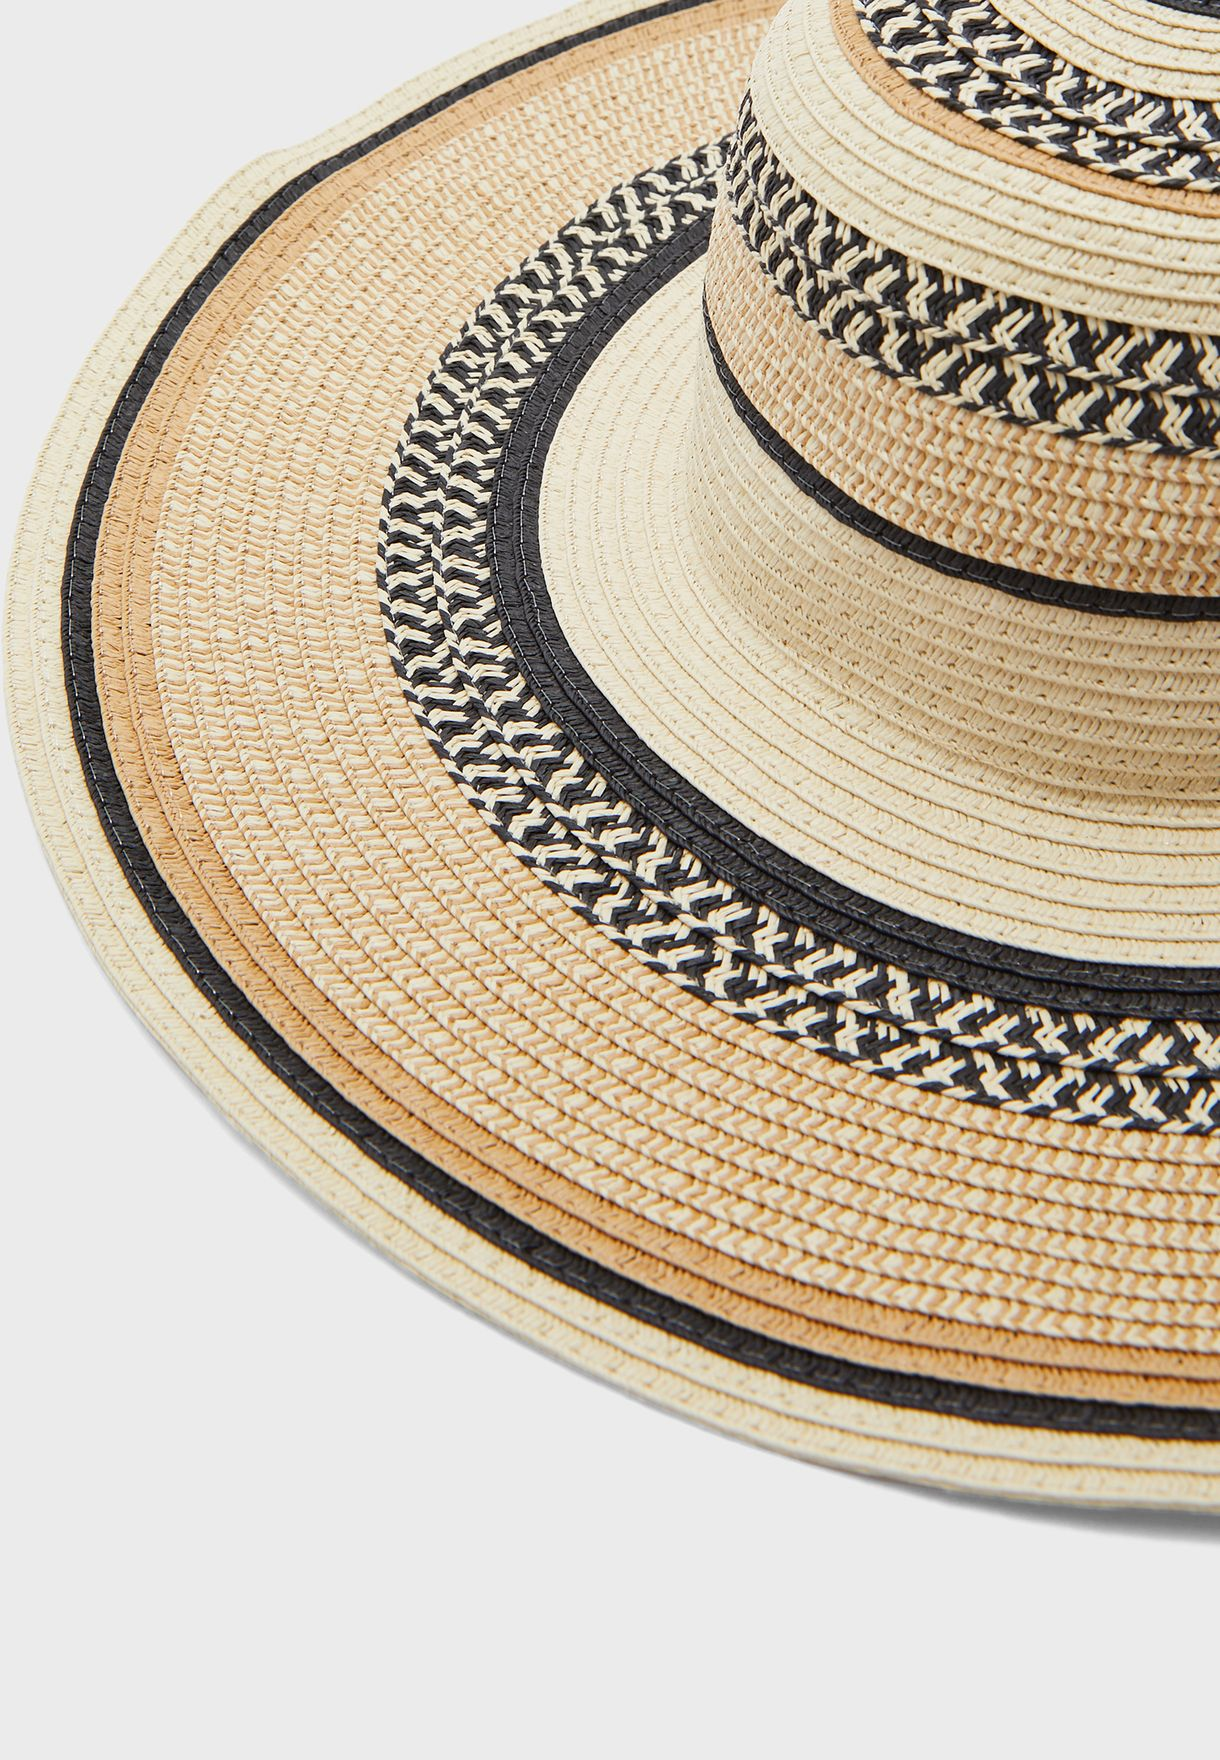 Patterned Multi Striped Wide Brim Straw Hat